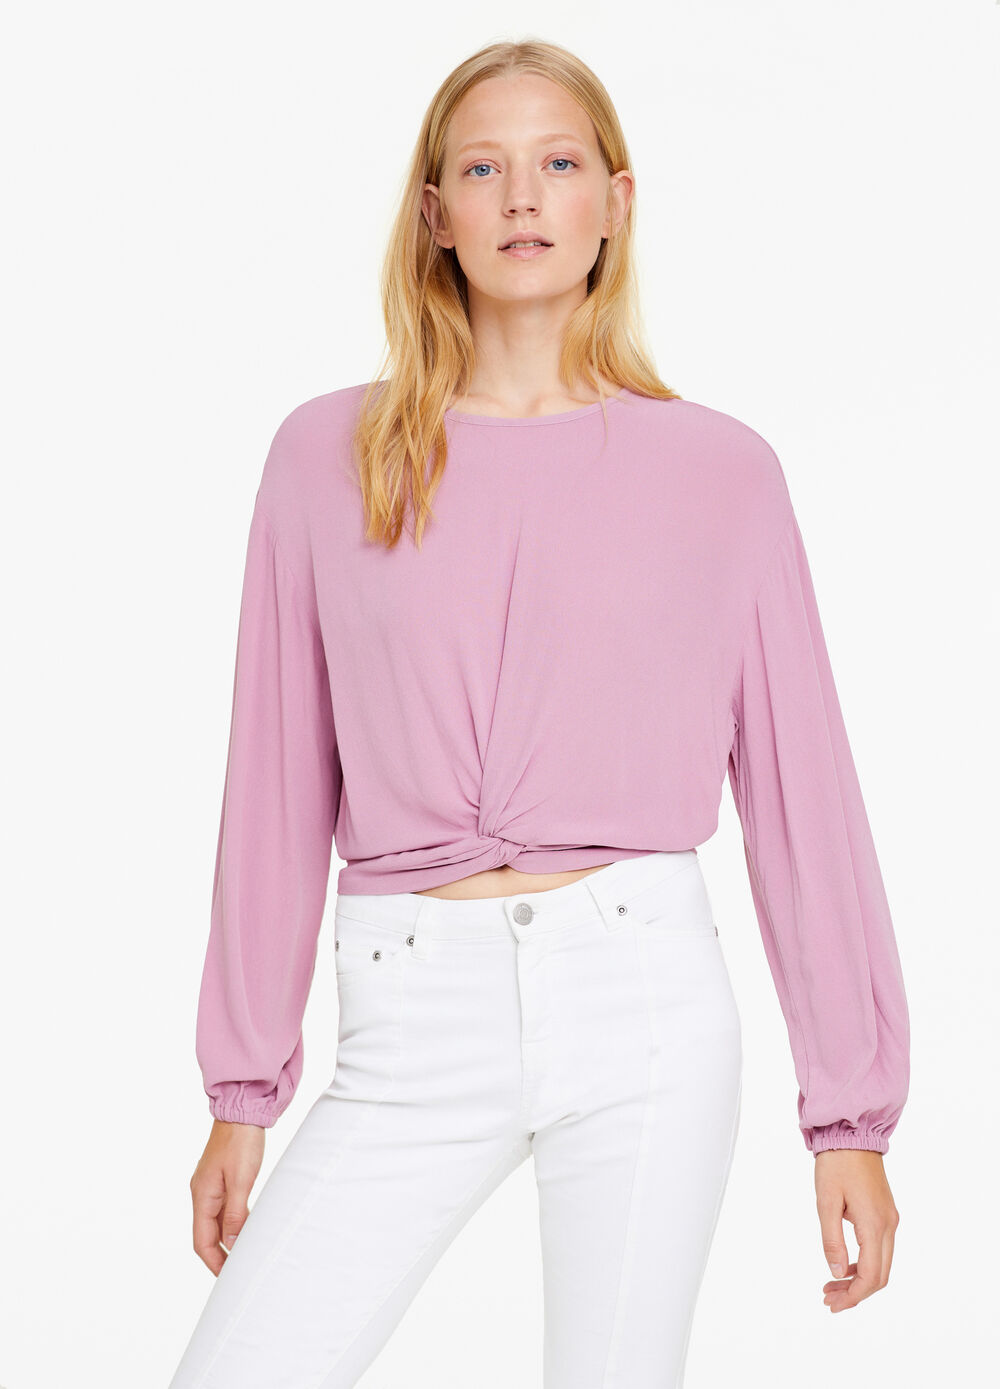 Blouse in 100% viscose with knot